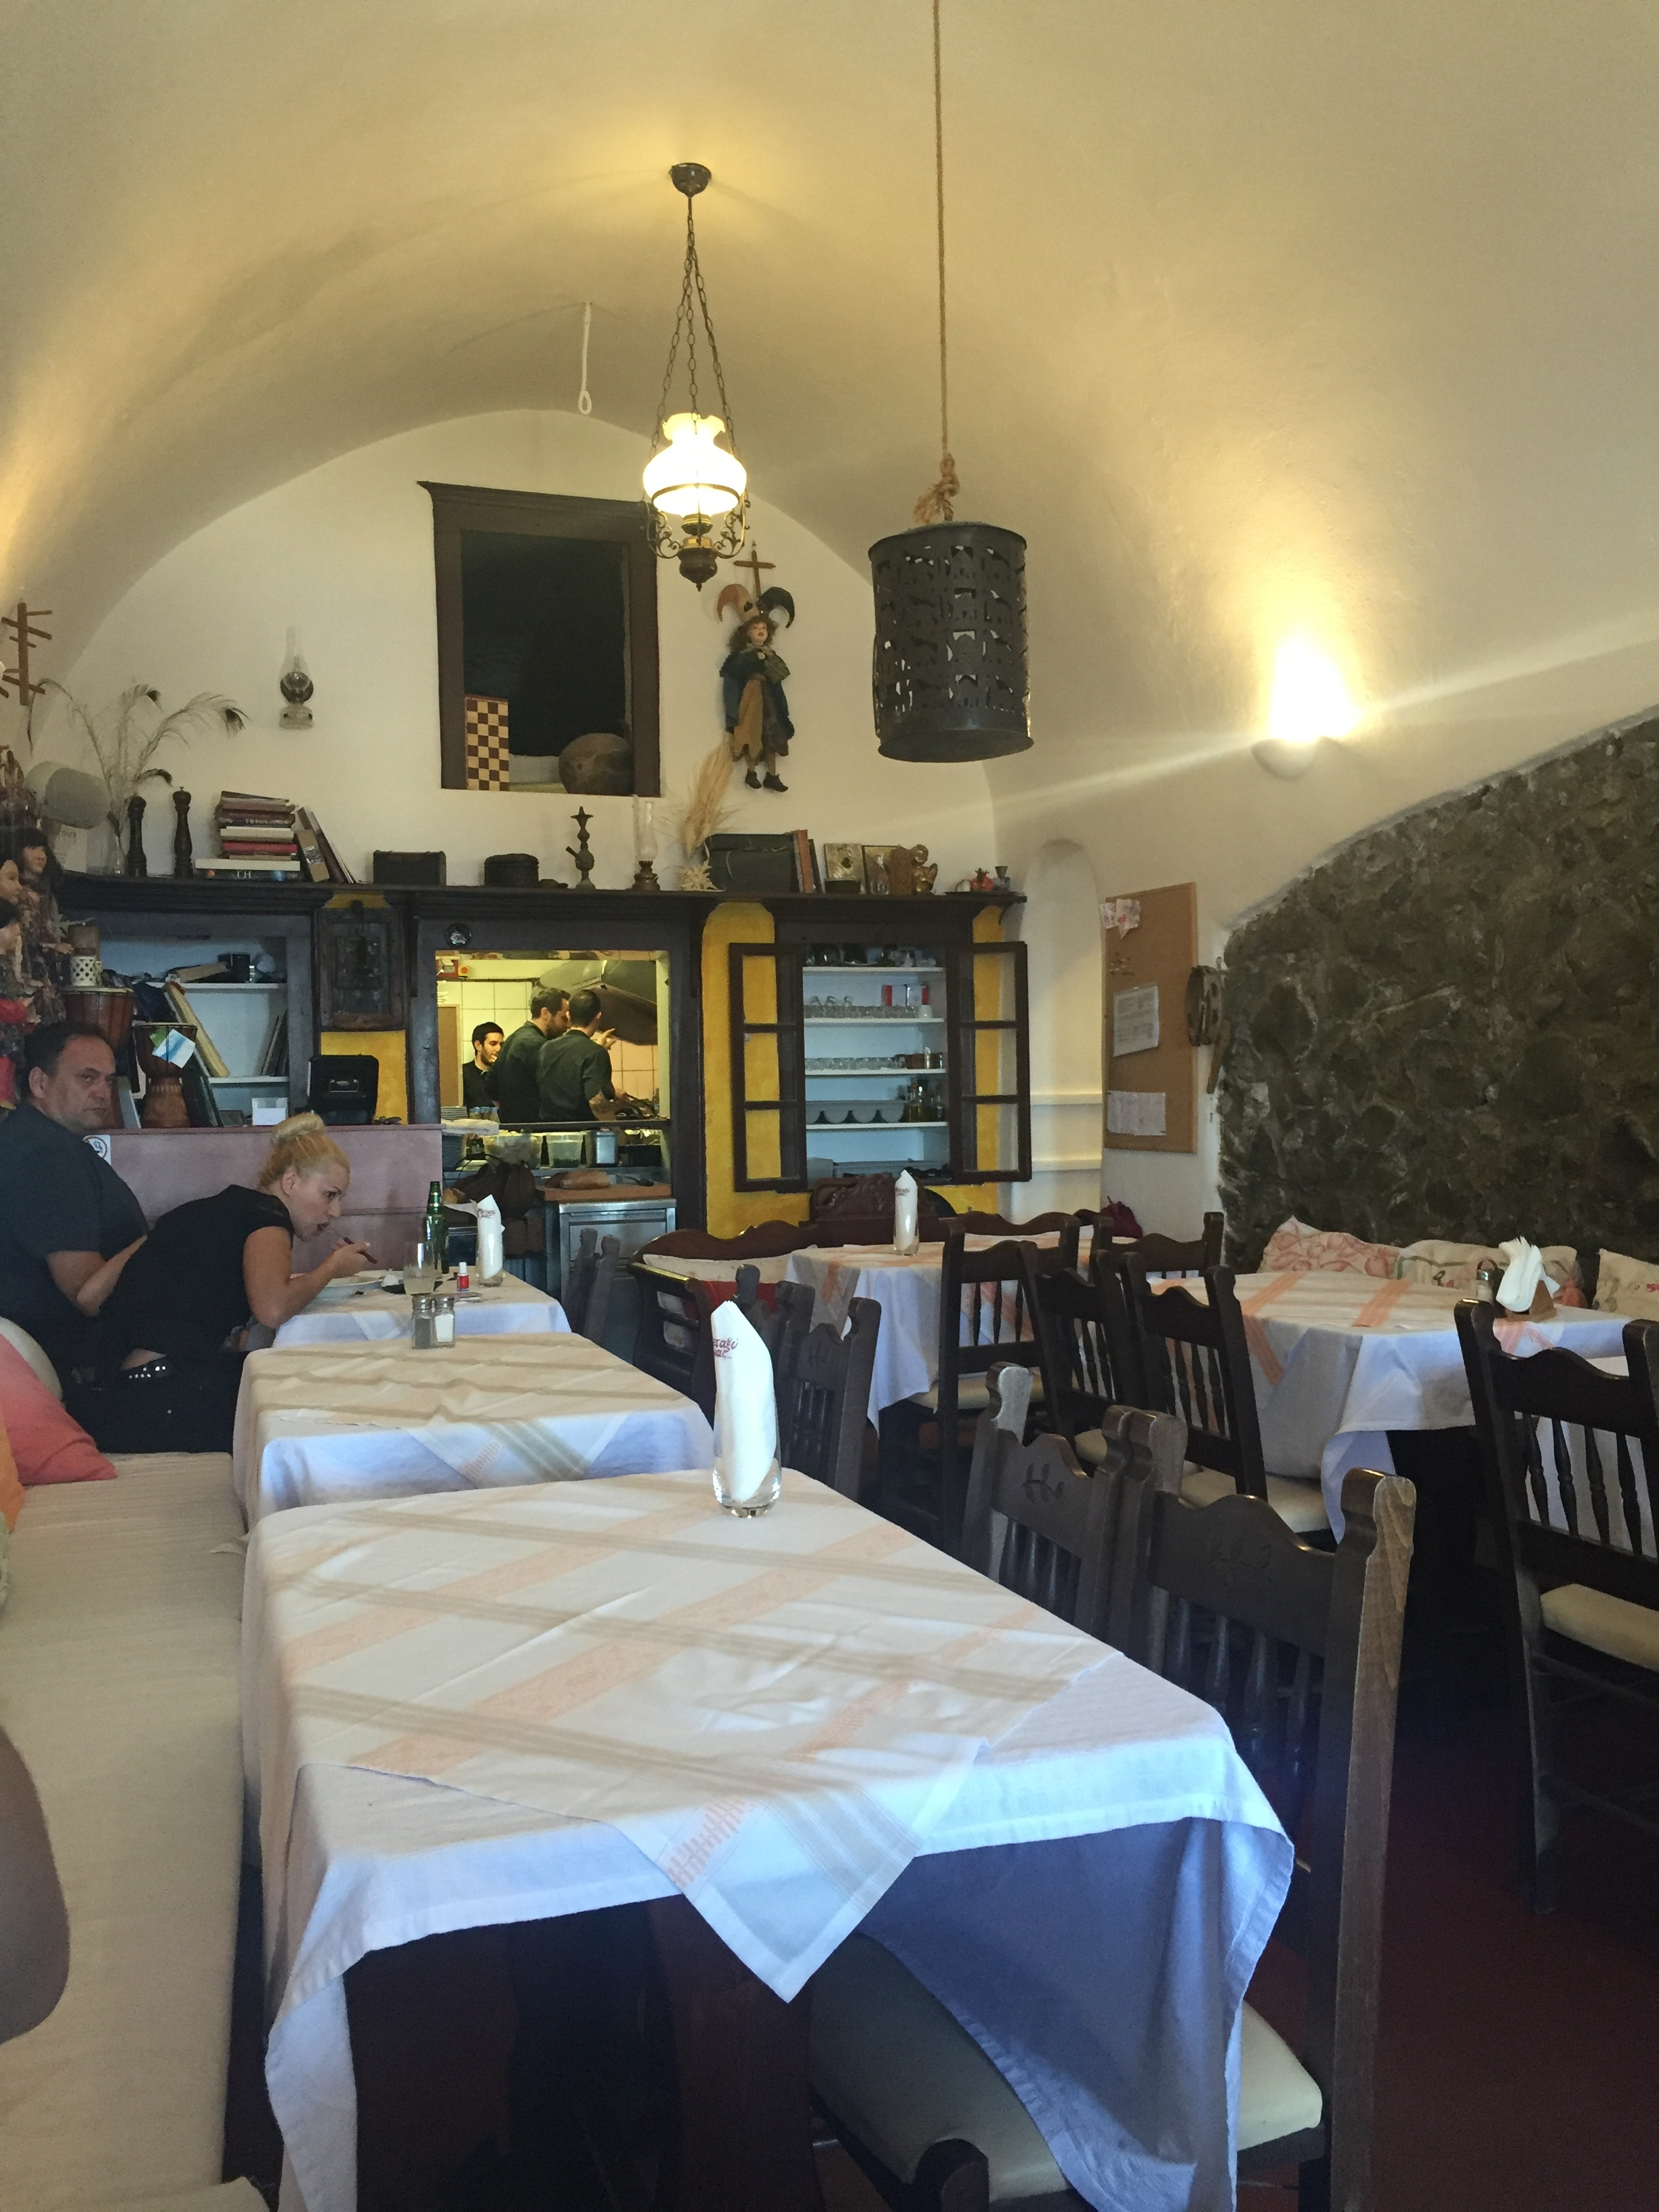 Quaint little spot with only 8 tables total, 4 on each side